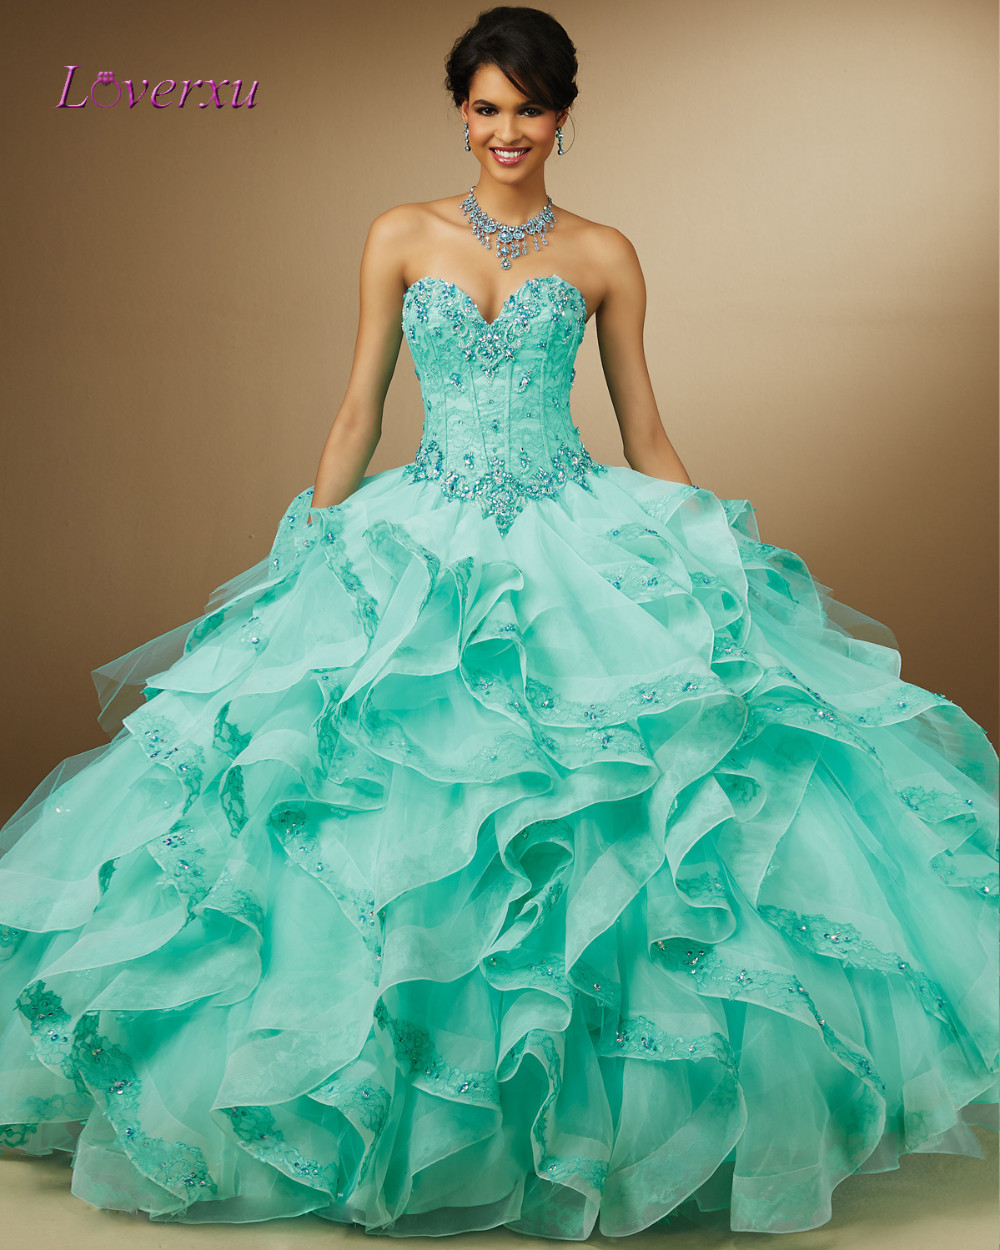 937fc119e2 Loverxu Elegant Sweetheart Green Ruffles Ball Gown Quinceanera Gowns ...